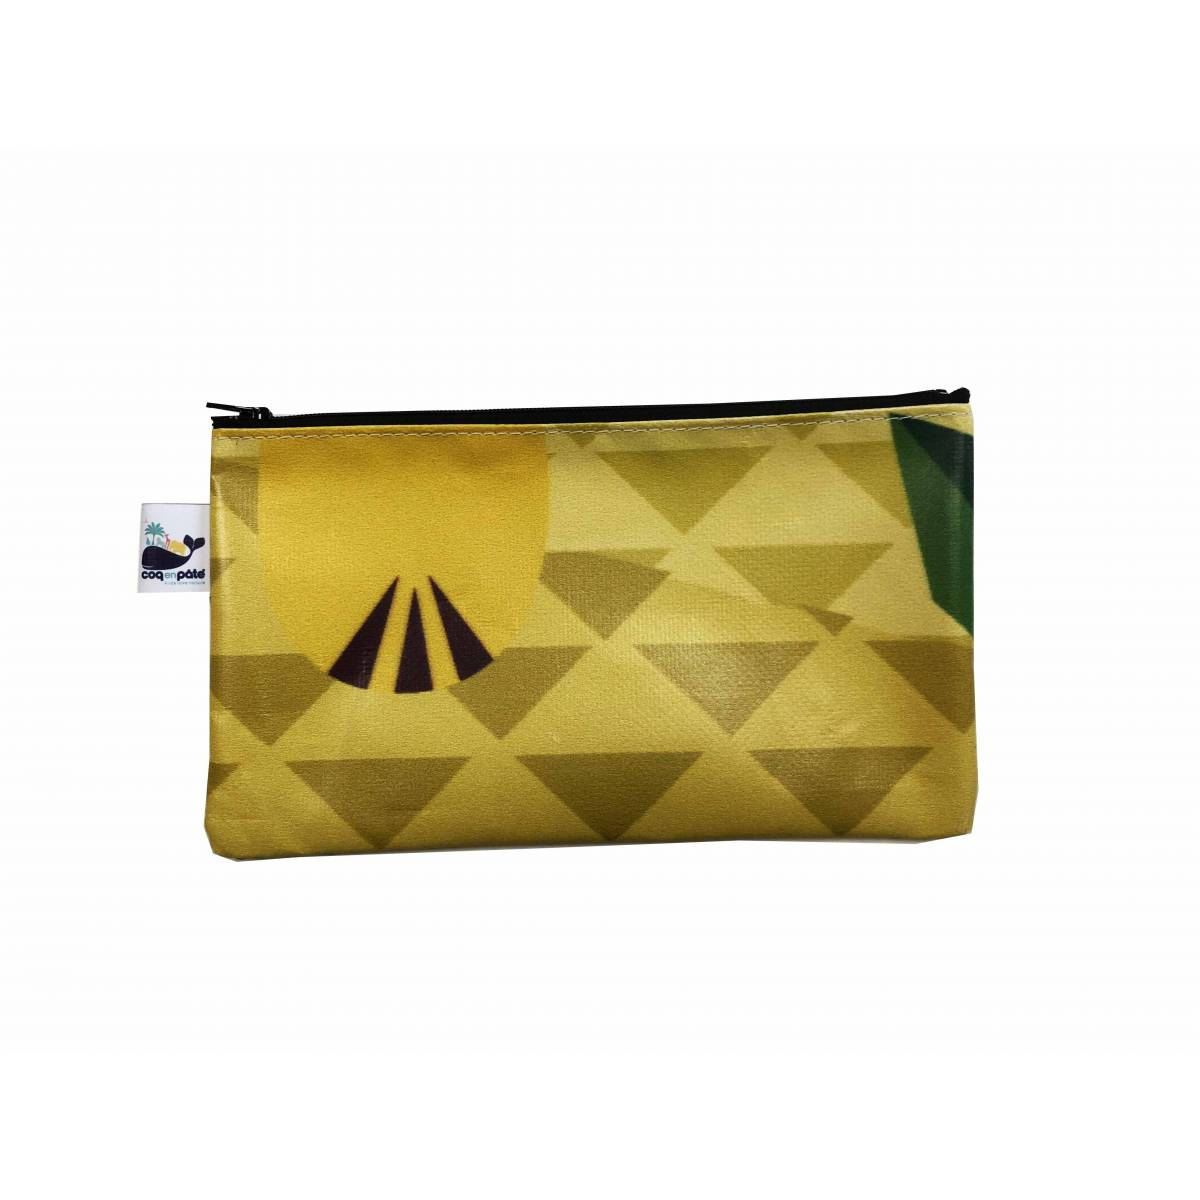 Pencil case - Limited Edition n°27/40